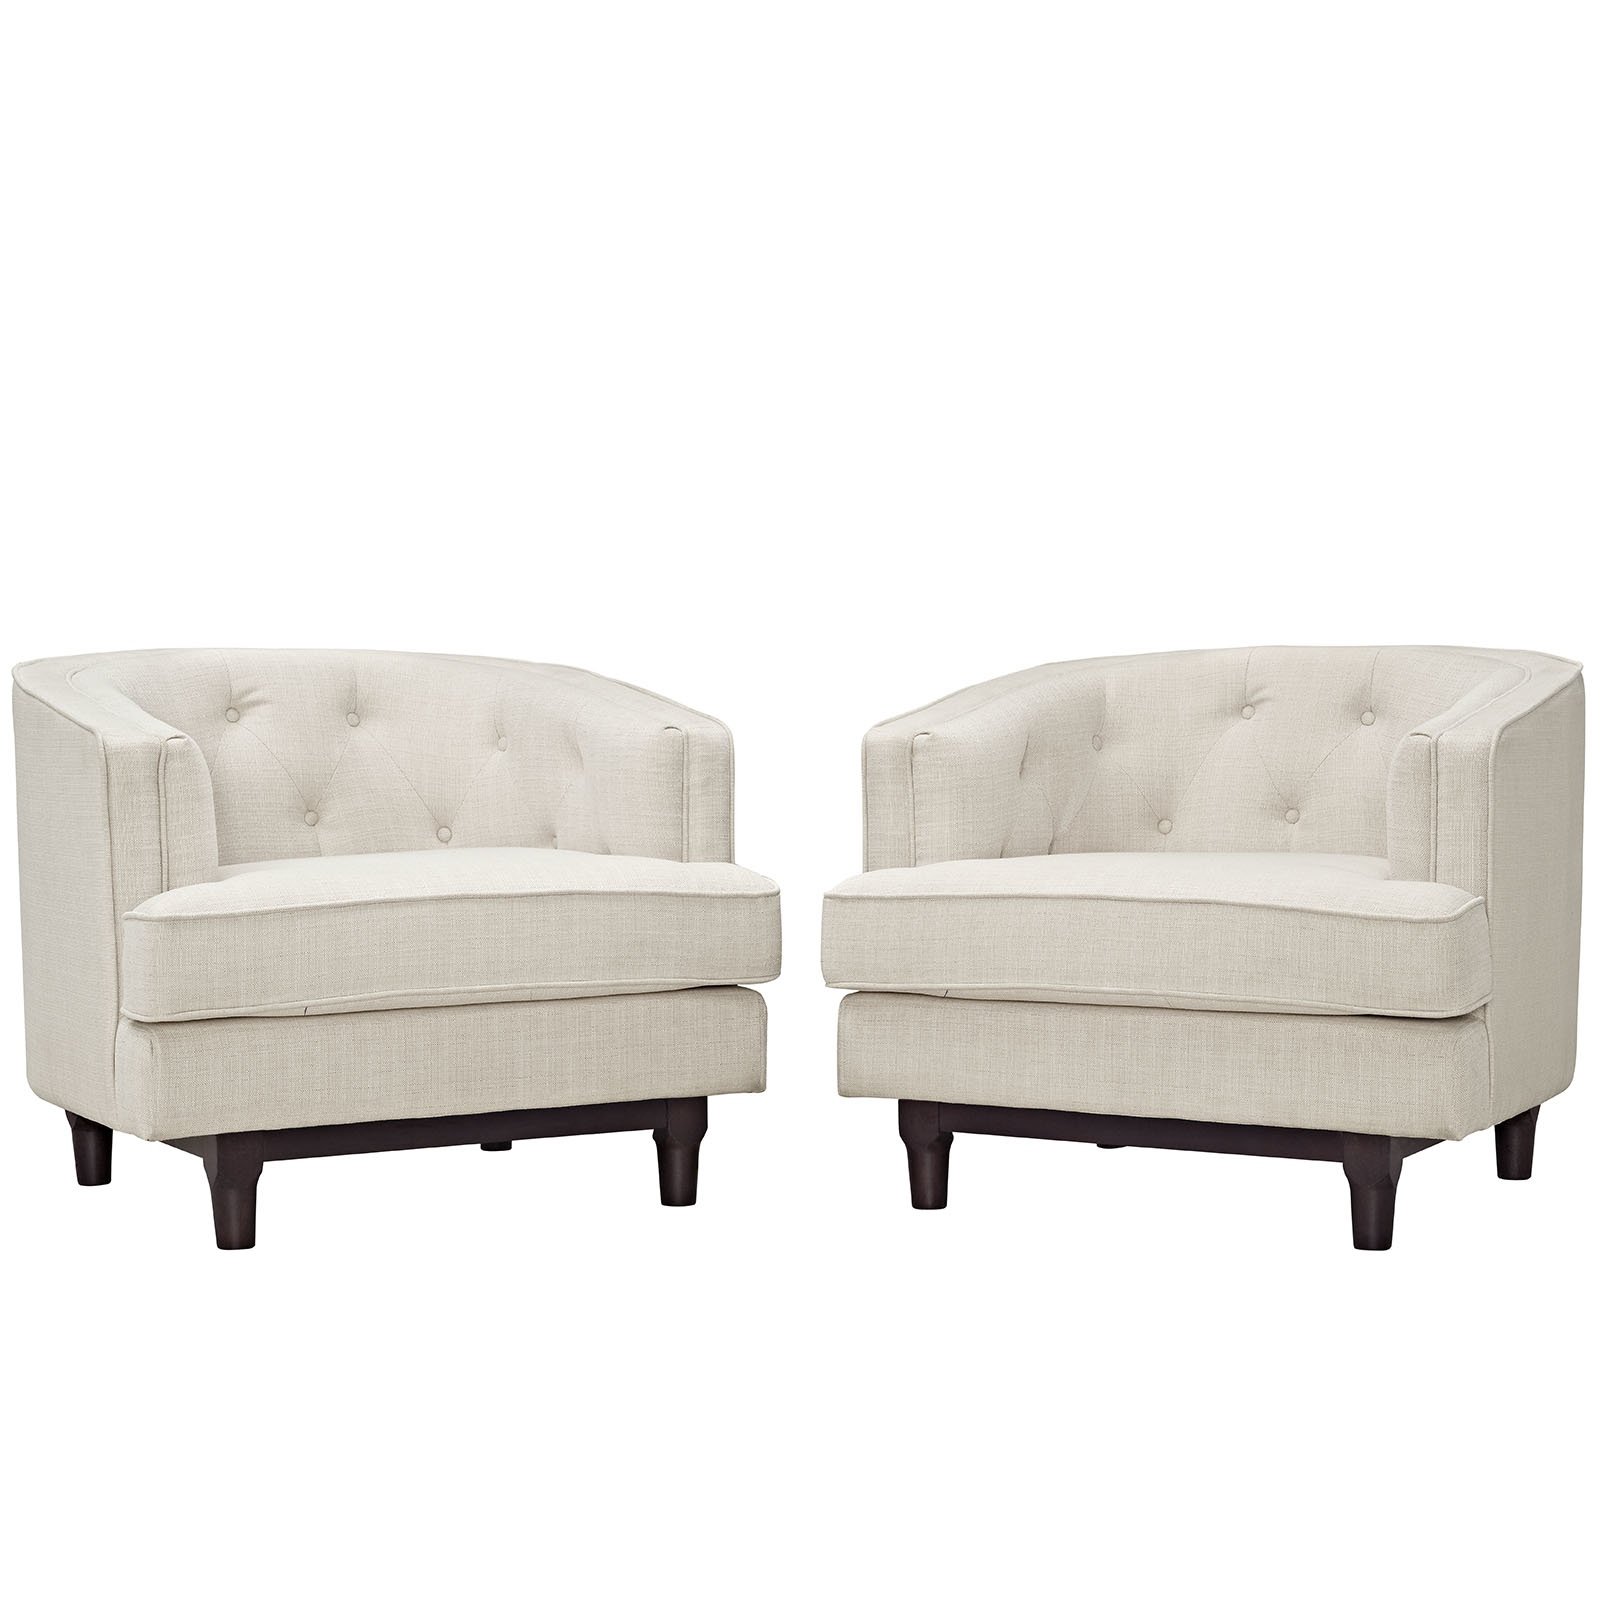 Modway Coast Living Room Set, Upholstered Armchairs, Set of 2, Multiple Colors